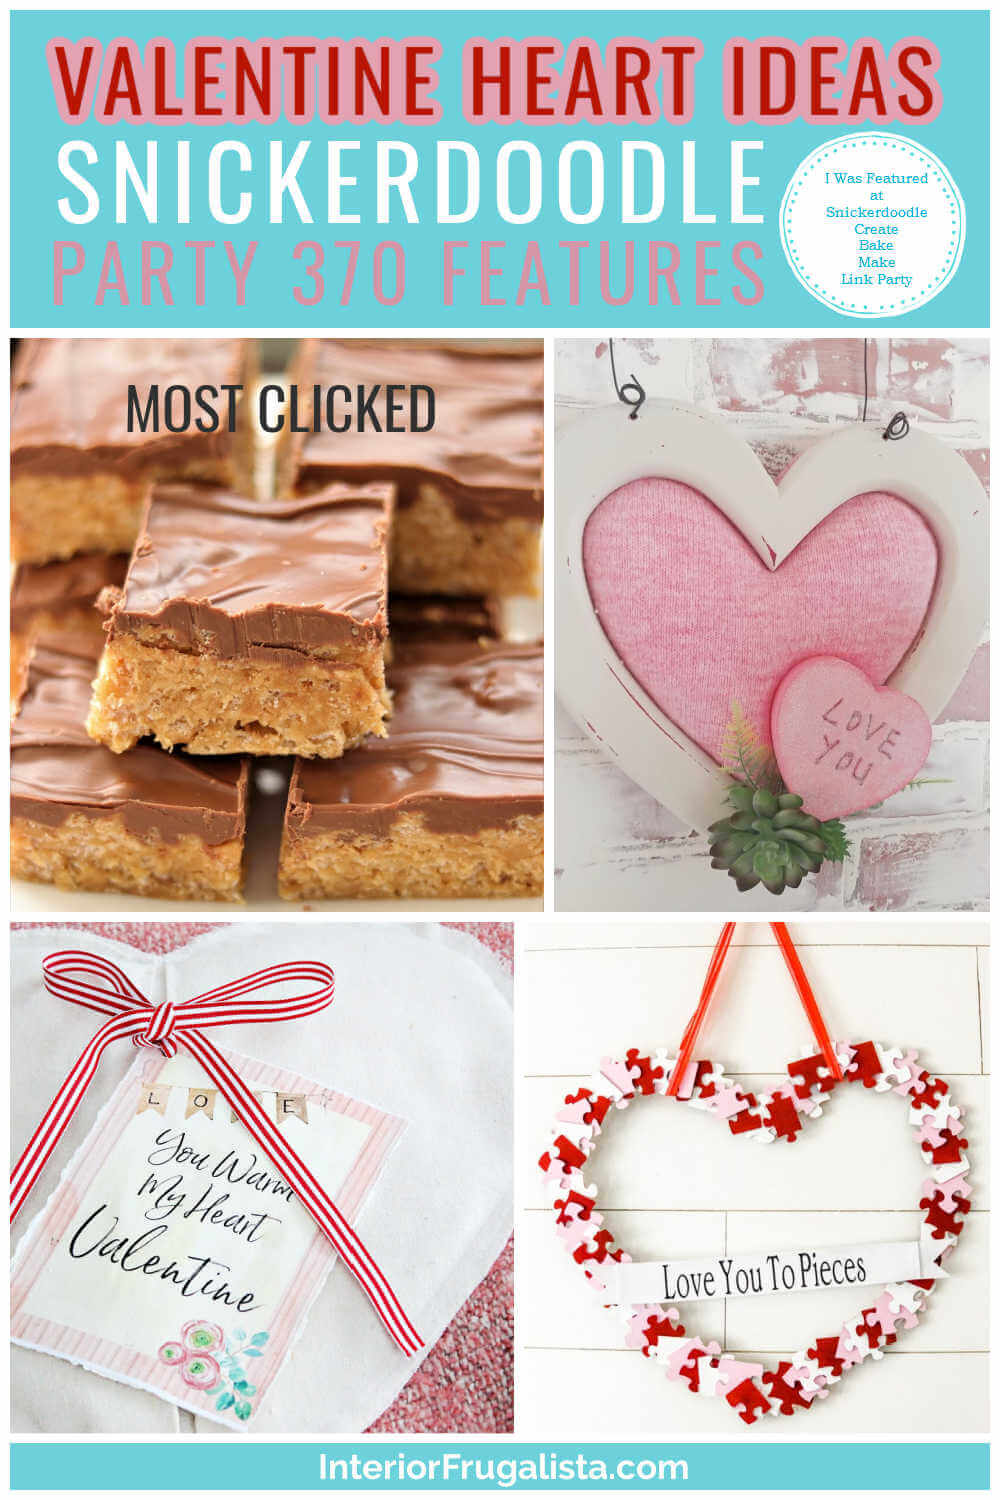 Valentine Heart Ideas - Snickerdoodle Create Bake Make Link Party 370 Features co-hosted by Interior Frugalista #linkparty #linkpartyfeatures #snickerdoodleparty